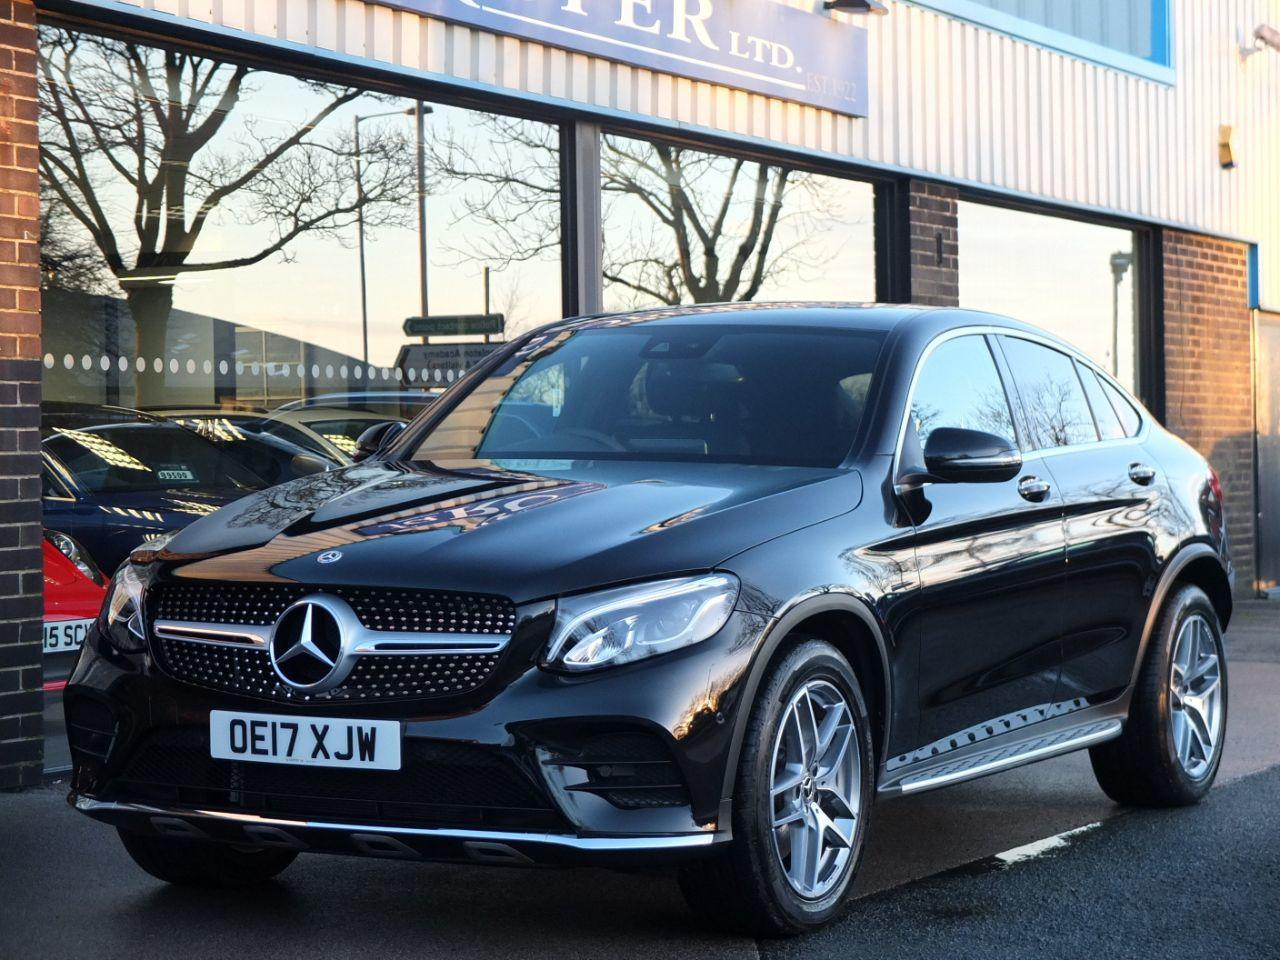 Mercedes-Benz GLC Coupe 3.0 350d 4Matic AMG Line Premium Plus 9G-Tronic Coupe Diesel Obsidian Black MetallicMercedes-Benz GLC Coupe 3.0 350d 4Matic AMG Line Premium Plus 9G-Tronic Coupe Diesel Obsidian Black Metallic at fa Roper Ltd Bradford